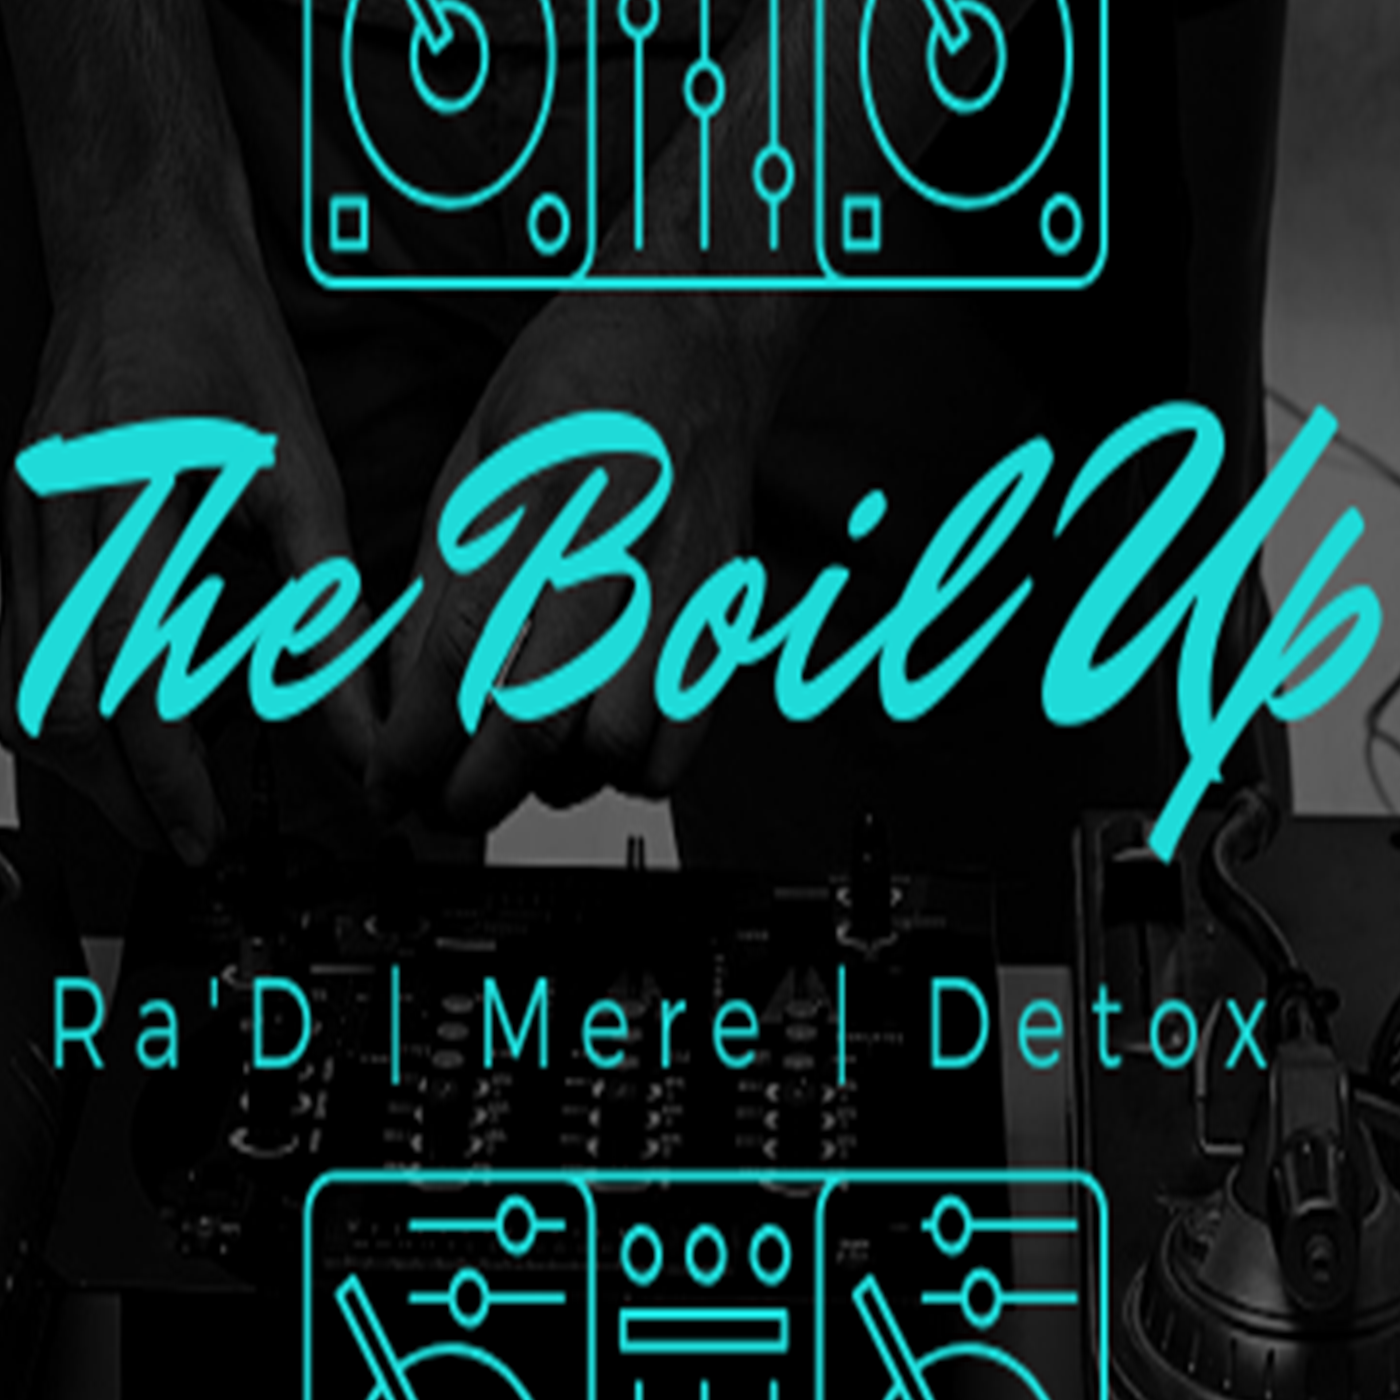 The Boil Up Radio Show - Ra, Mere, and DJ Detox-23-07-2019